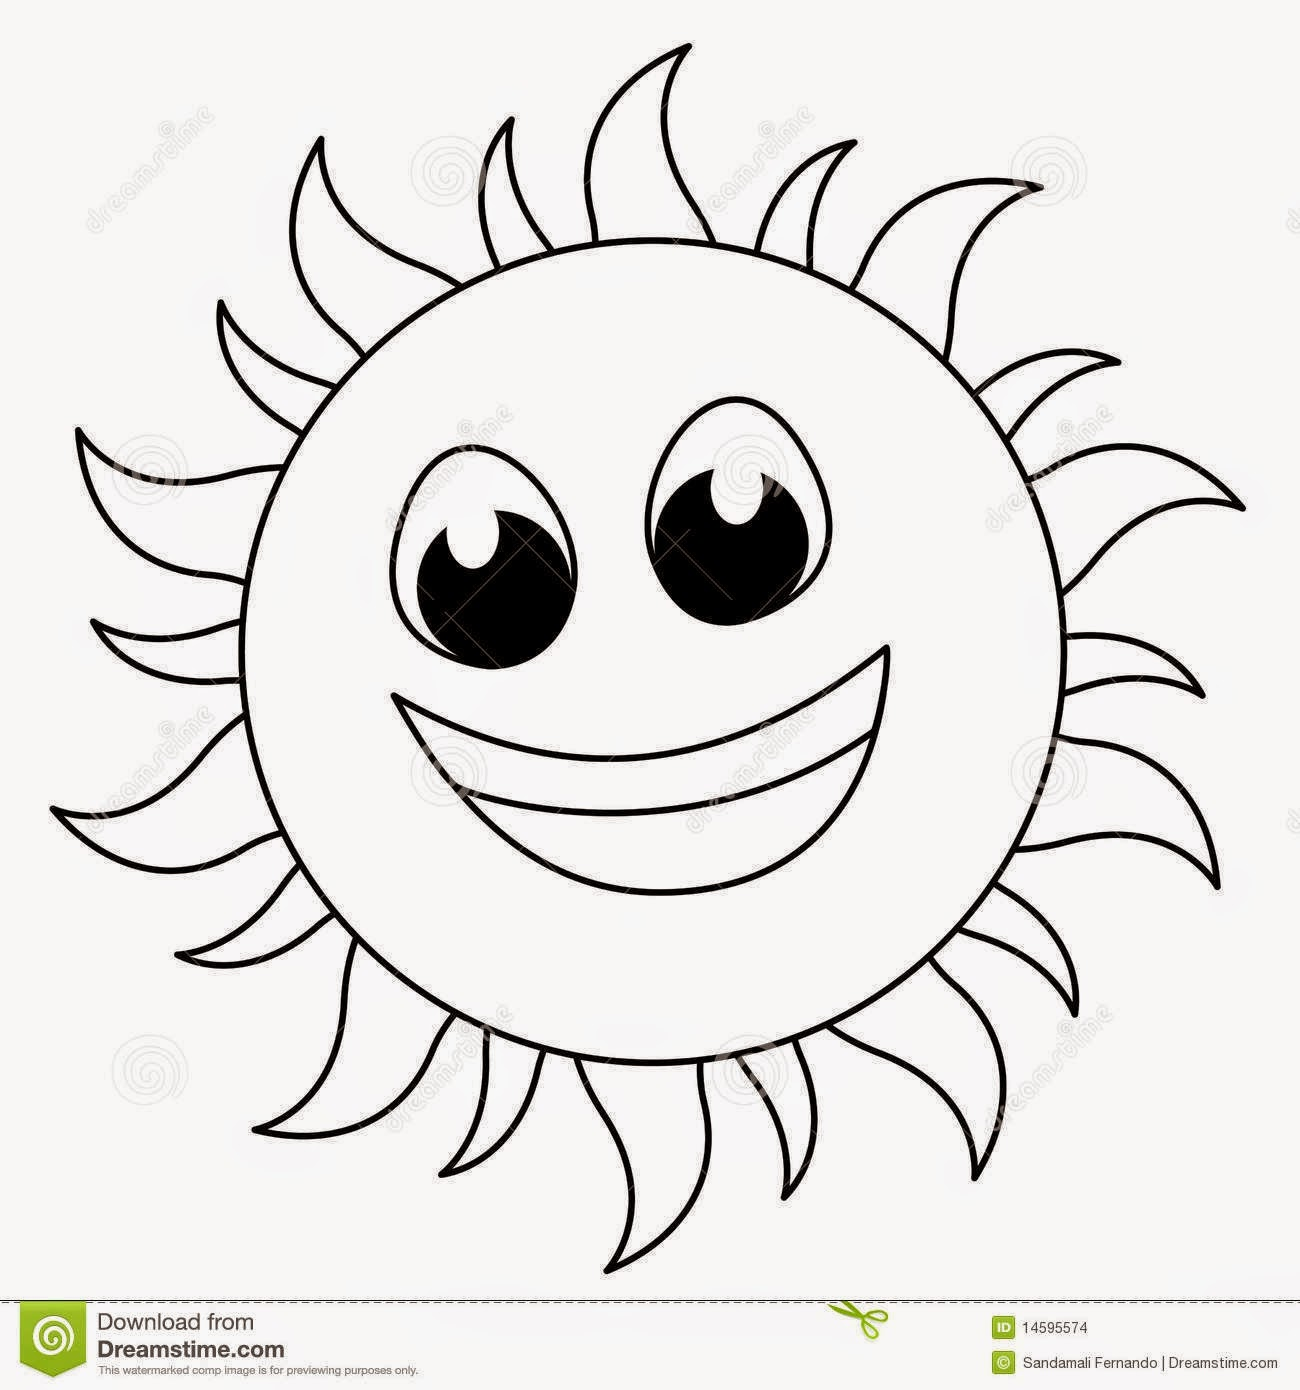 sun clipart black and white clipart free download black and white sun clipart png clipart black and white sun